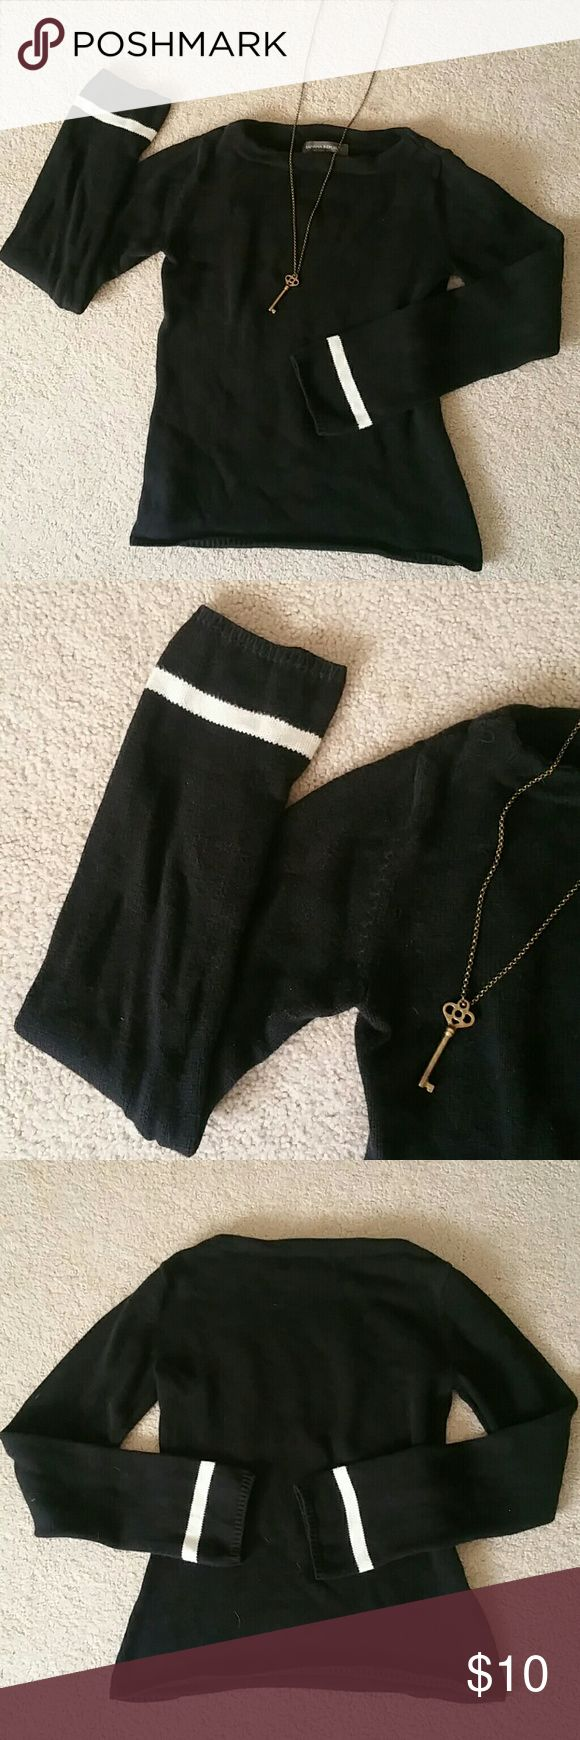 Banana Republic Black sweater This sweater is 100% cotton, with white accents Stripes at the wrist. This sweater is from the Banana Republic Factory Store. Very slight pilling to the armpits, otherwise excellent condition. Make an offer! Banana Republic Tops Sweatshirts & Hoodies